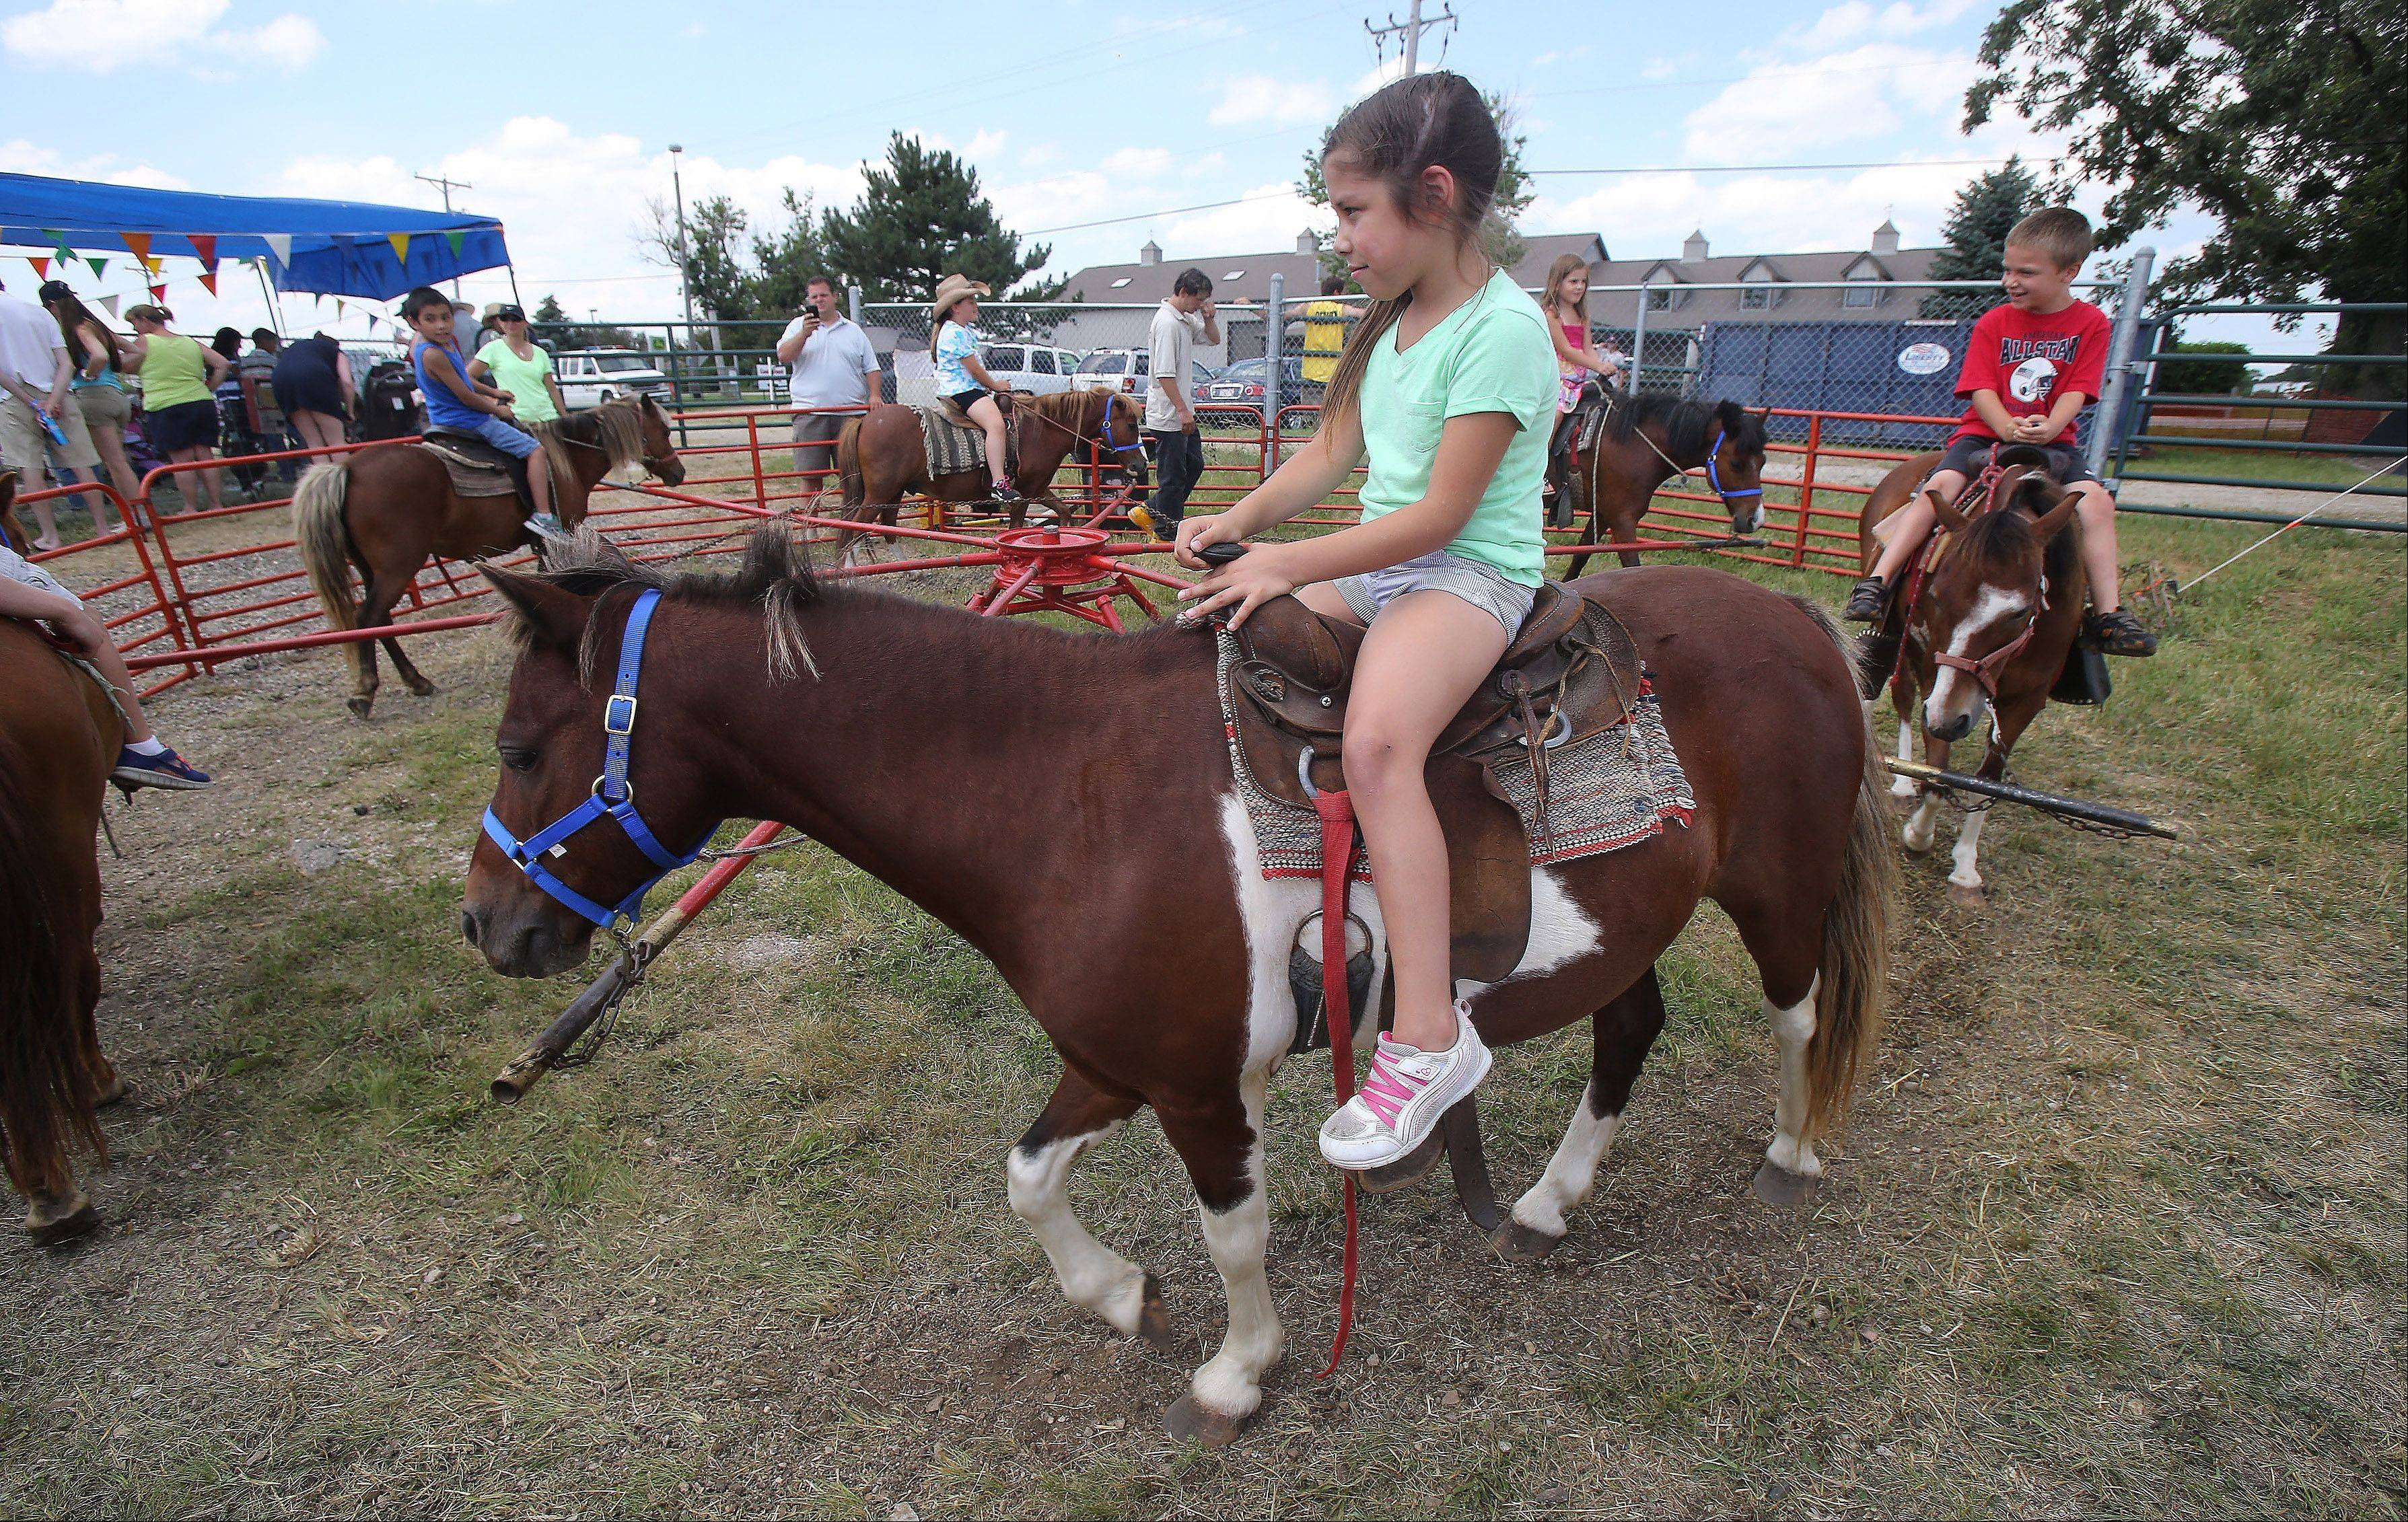 Nico Plumeri, 8, of Round Lake and her brother, Zac, 6, ride the ponies during the 50th Annual IPRA Championship Wauconda Rodeo Sunday at Green Oaks Rodeo Grounds. The Wauconda Area Chamber of Commerce sponsored the event that featured a mechanical bull, pony rides and calf roping as well as the rodeo show.